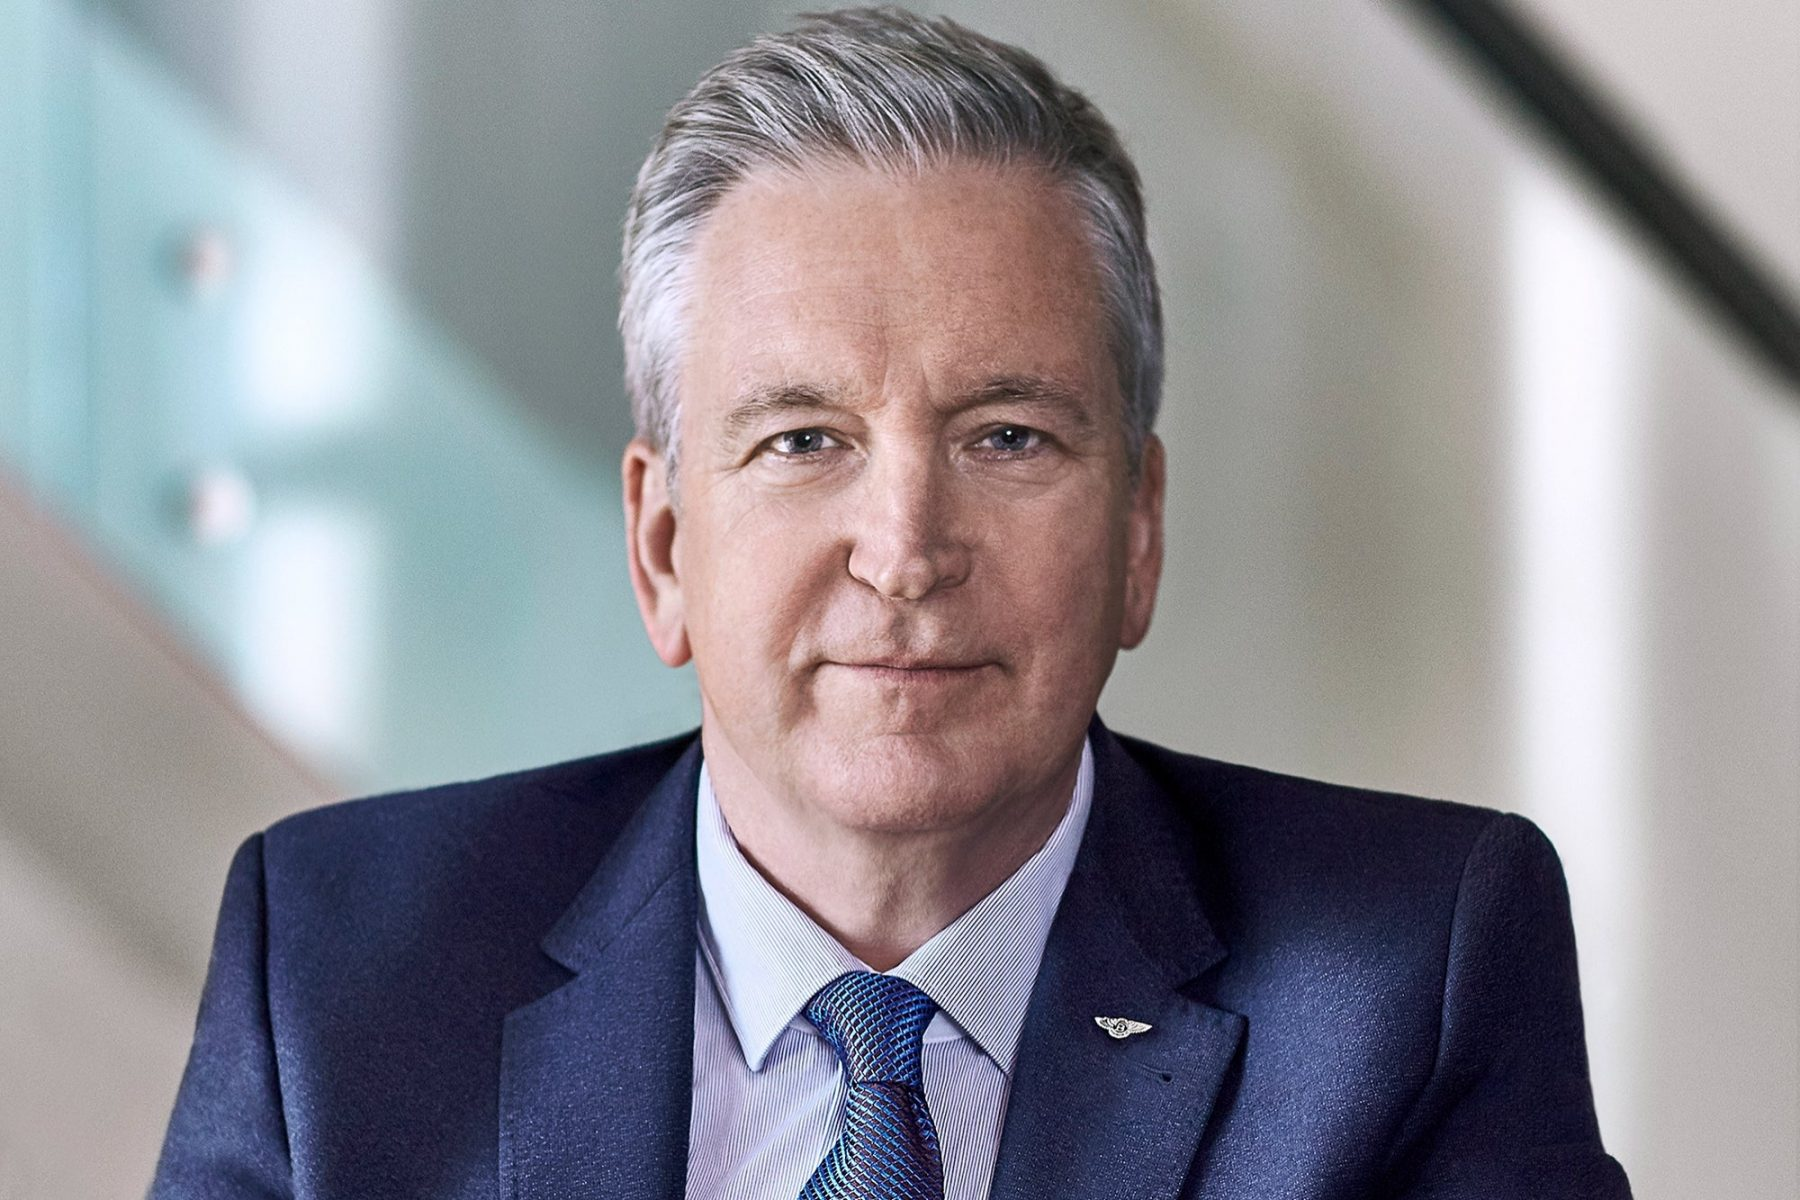 ceo-and-chairman-adrian-hallmark-wants-bentley-motors-to-be-the-most-sustainable-luxury-automotive-manufacturer-in-the-world-he's-well-on-his-way.